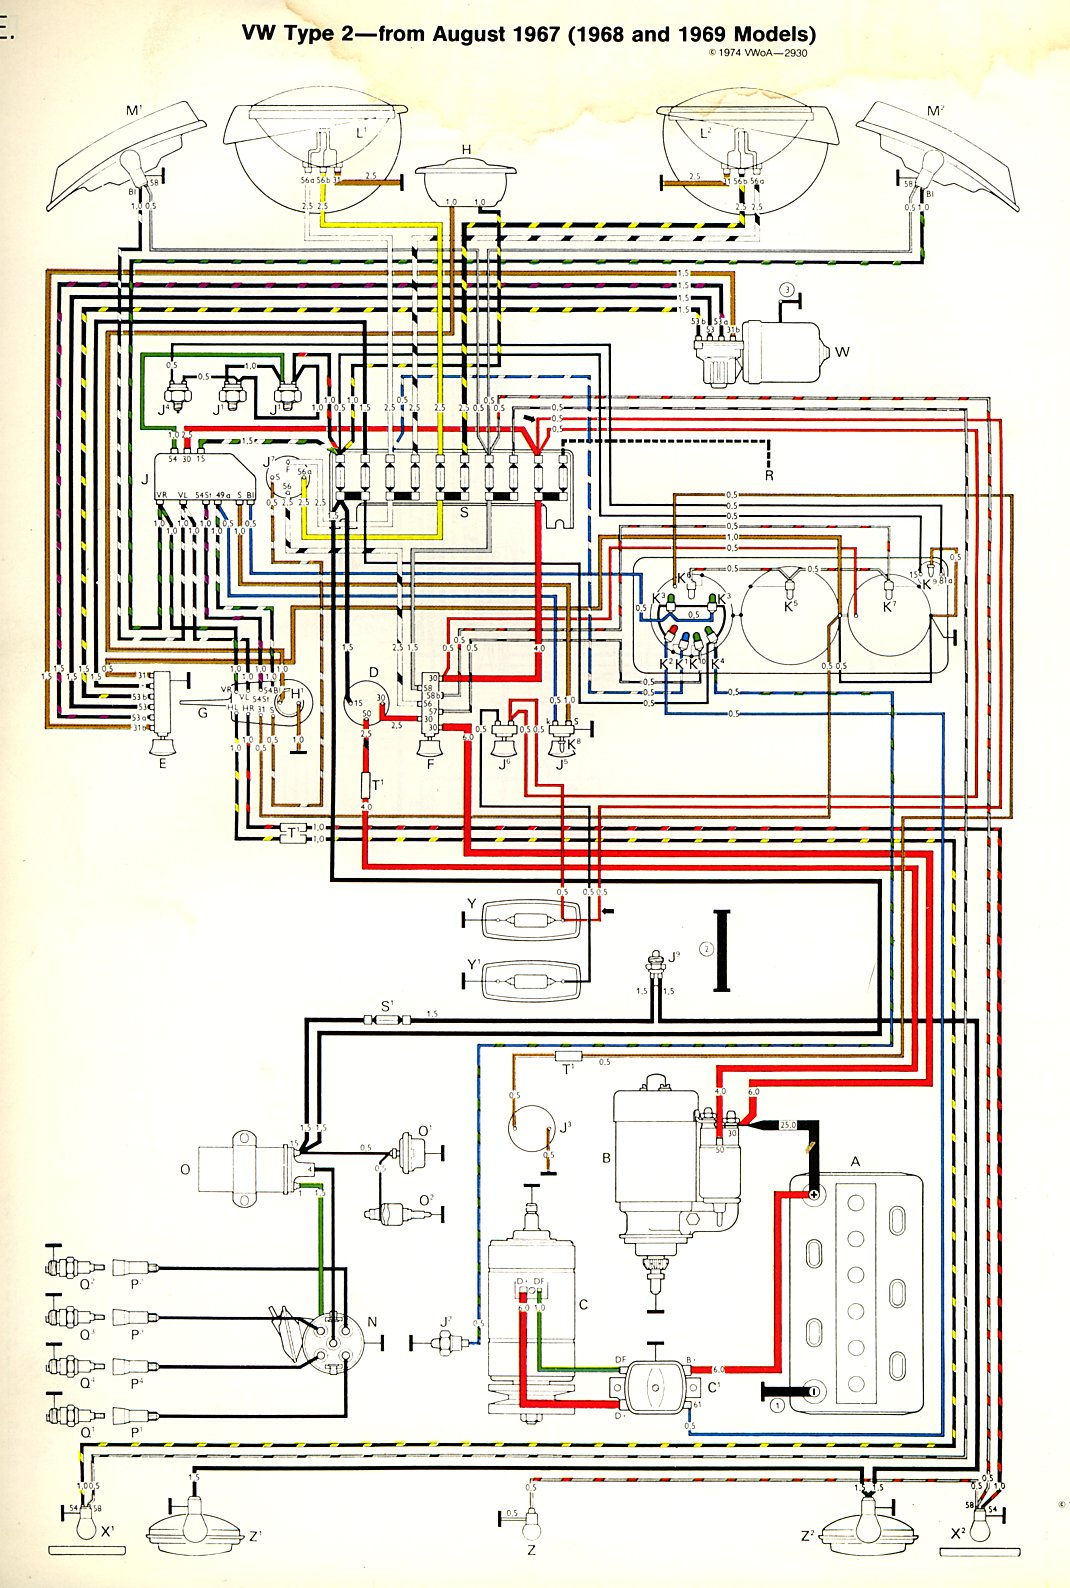 1981 Club Car Electric Wire Diagram | Wiring Liry Electric Club Car Wiring Diagram on 86 club car wiring diagram, 1983 club car wiring diagram, 97 club car wiring diagram, club car schematic diagram, 95 club car wiring diagram, 1982 club car wiring diagram, club car battery wiring diagram, 1981 club car gas, club car parts diagram, 1987 club car wiring diagram, 1980 club car wiring diagram, club car headlight wiring diagram, club car electrical diagram, 1981 club car engine, 1981 club car golf cart, 36 volt club car wiring diagram, club car light wiring diagram, electric club car wiring diagram, 2000 club car golf cart wiring diagram, 87 club car wiring diagram,